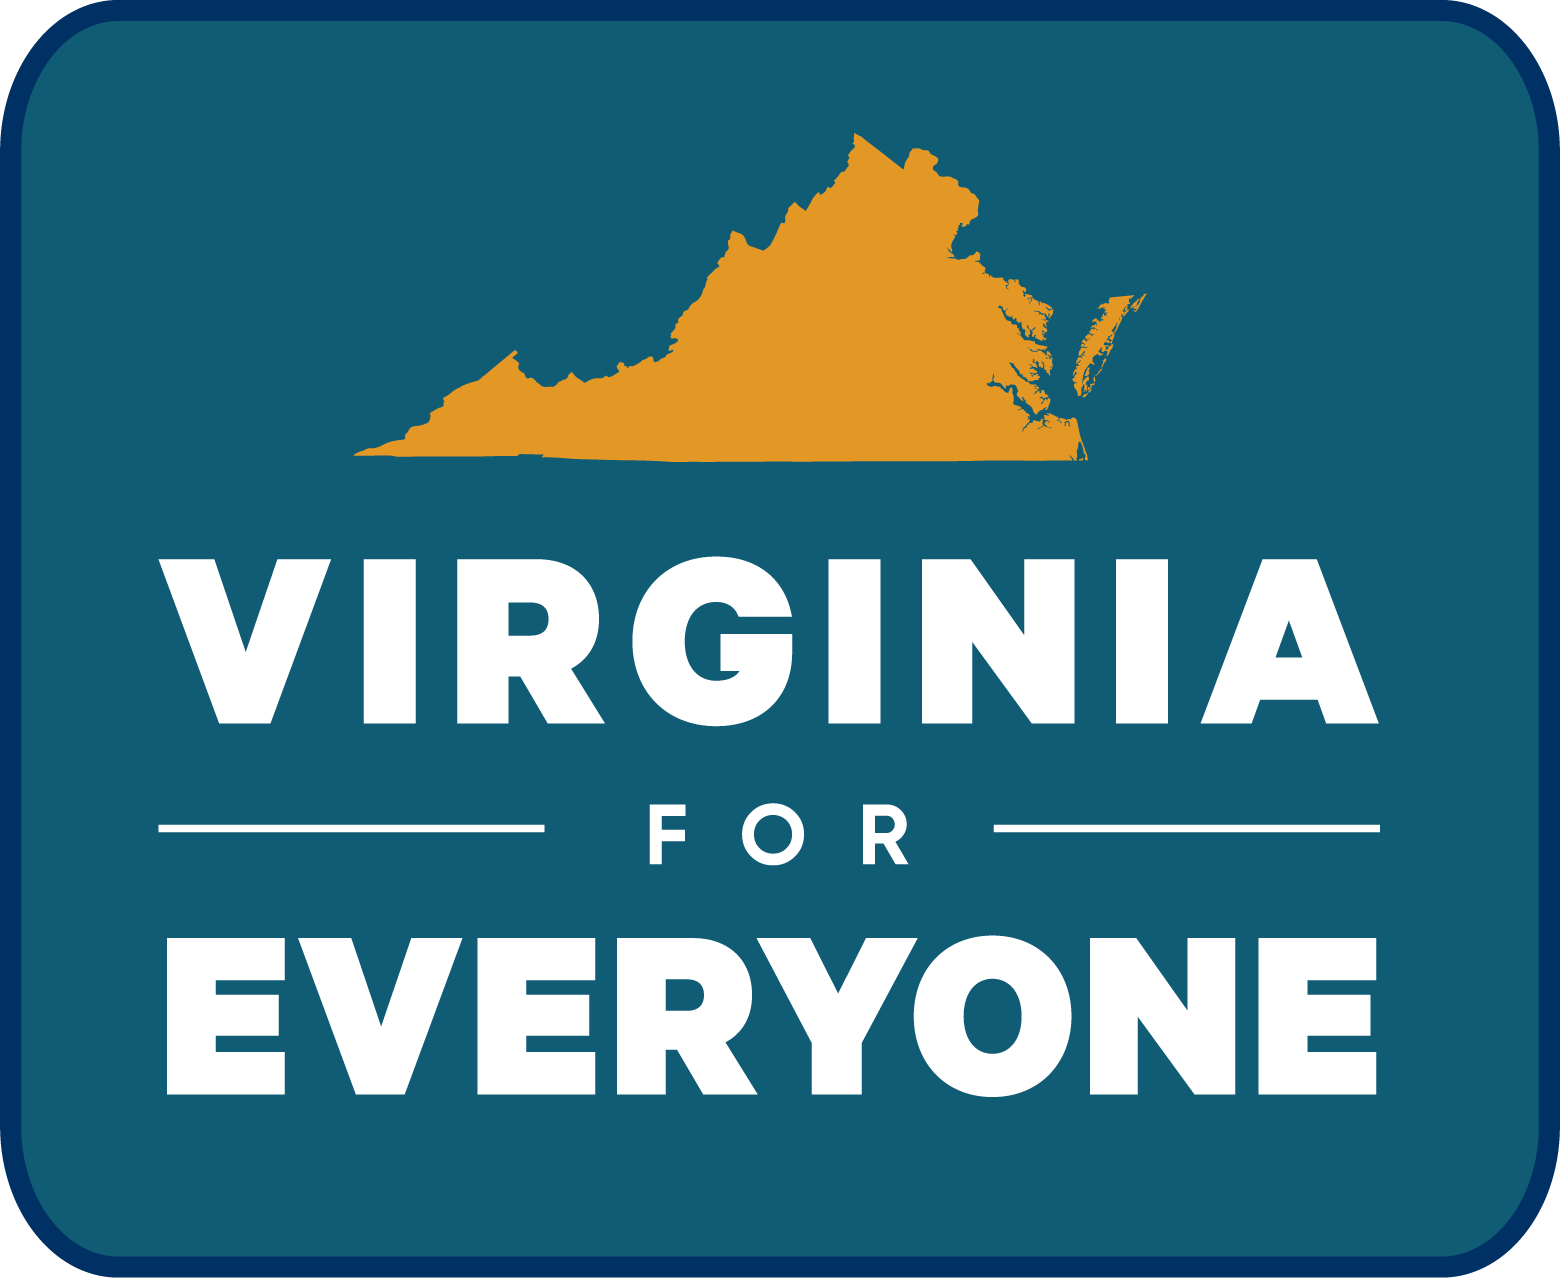 Virginia for Everyone